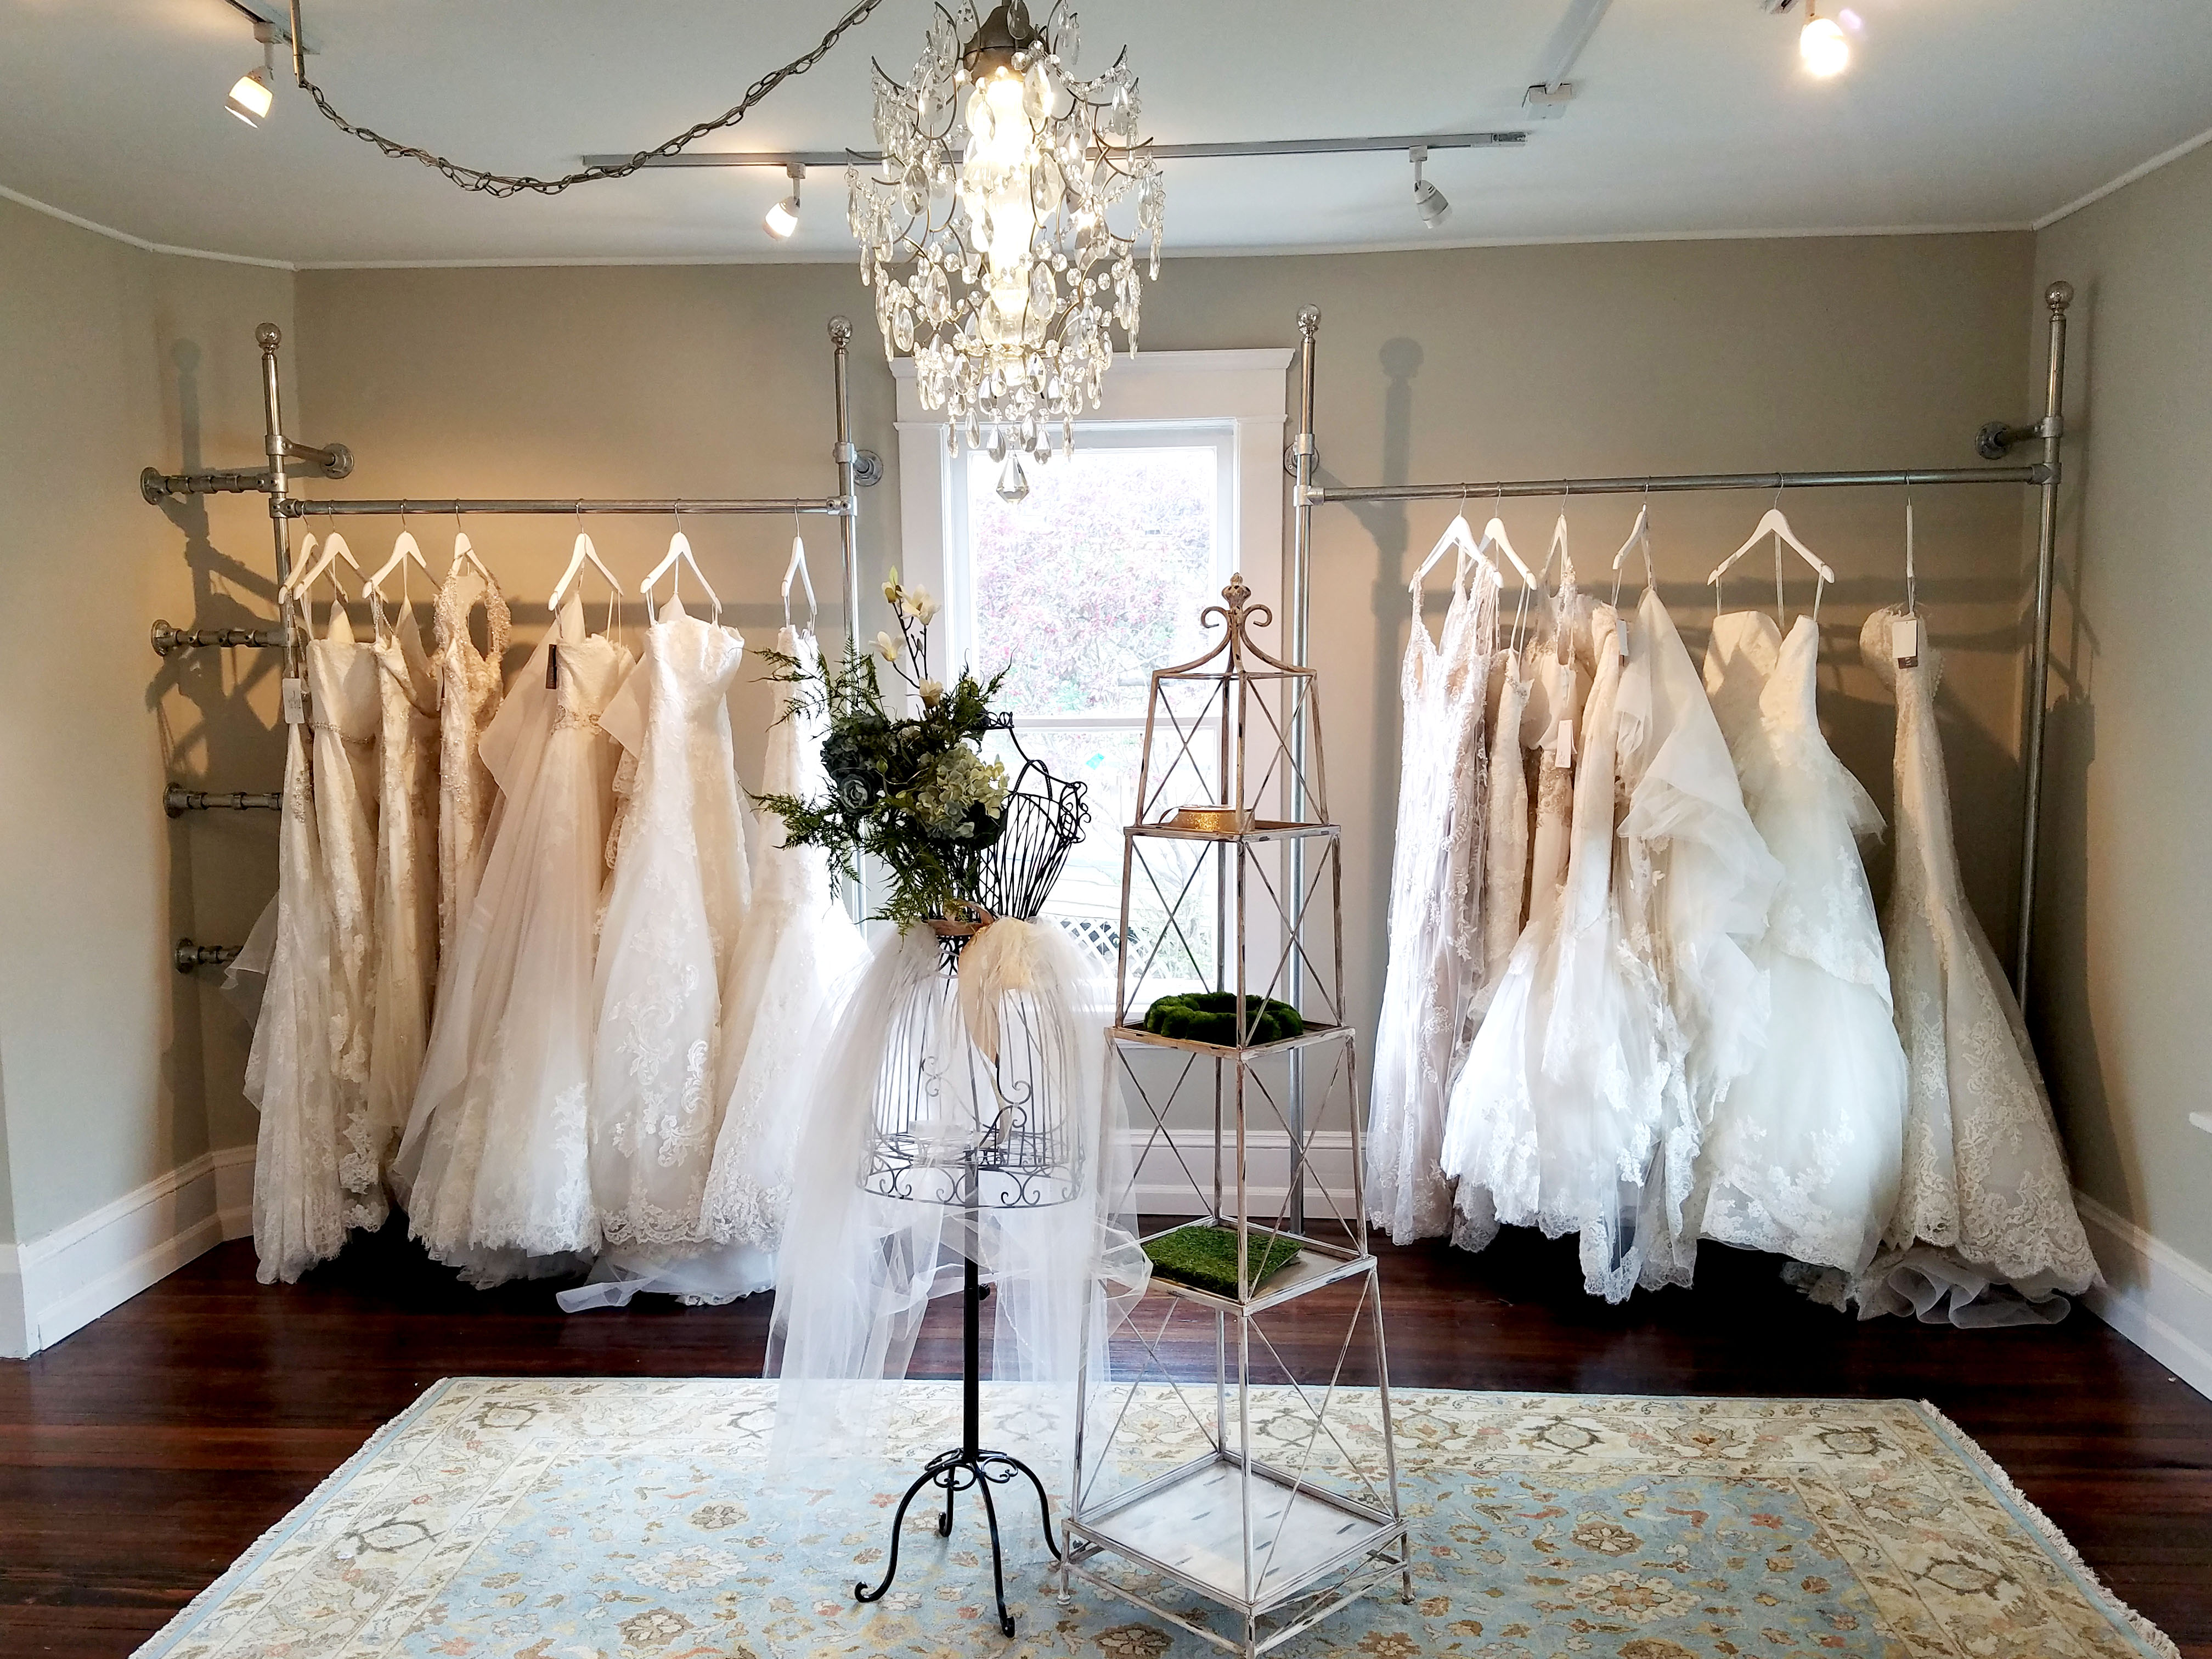 Again This Clothing Rack Is Also Mounted To The Wall And Used Display Wedding Dresses Ground Using Flange